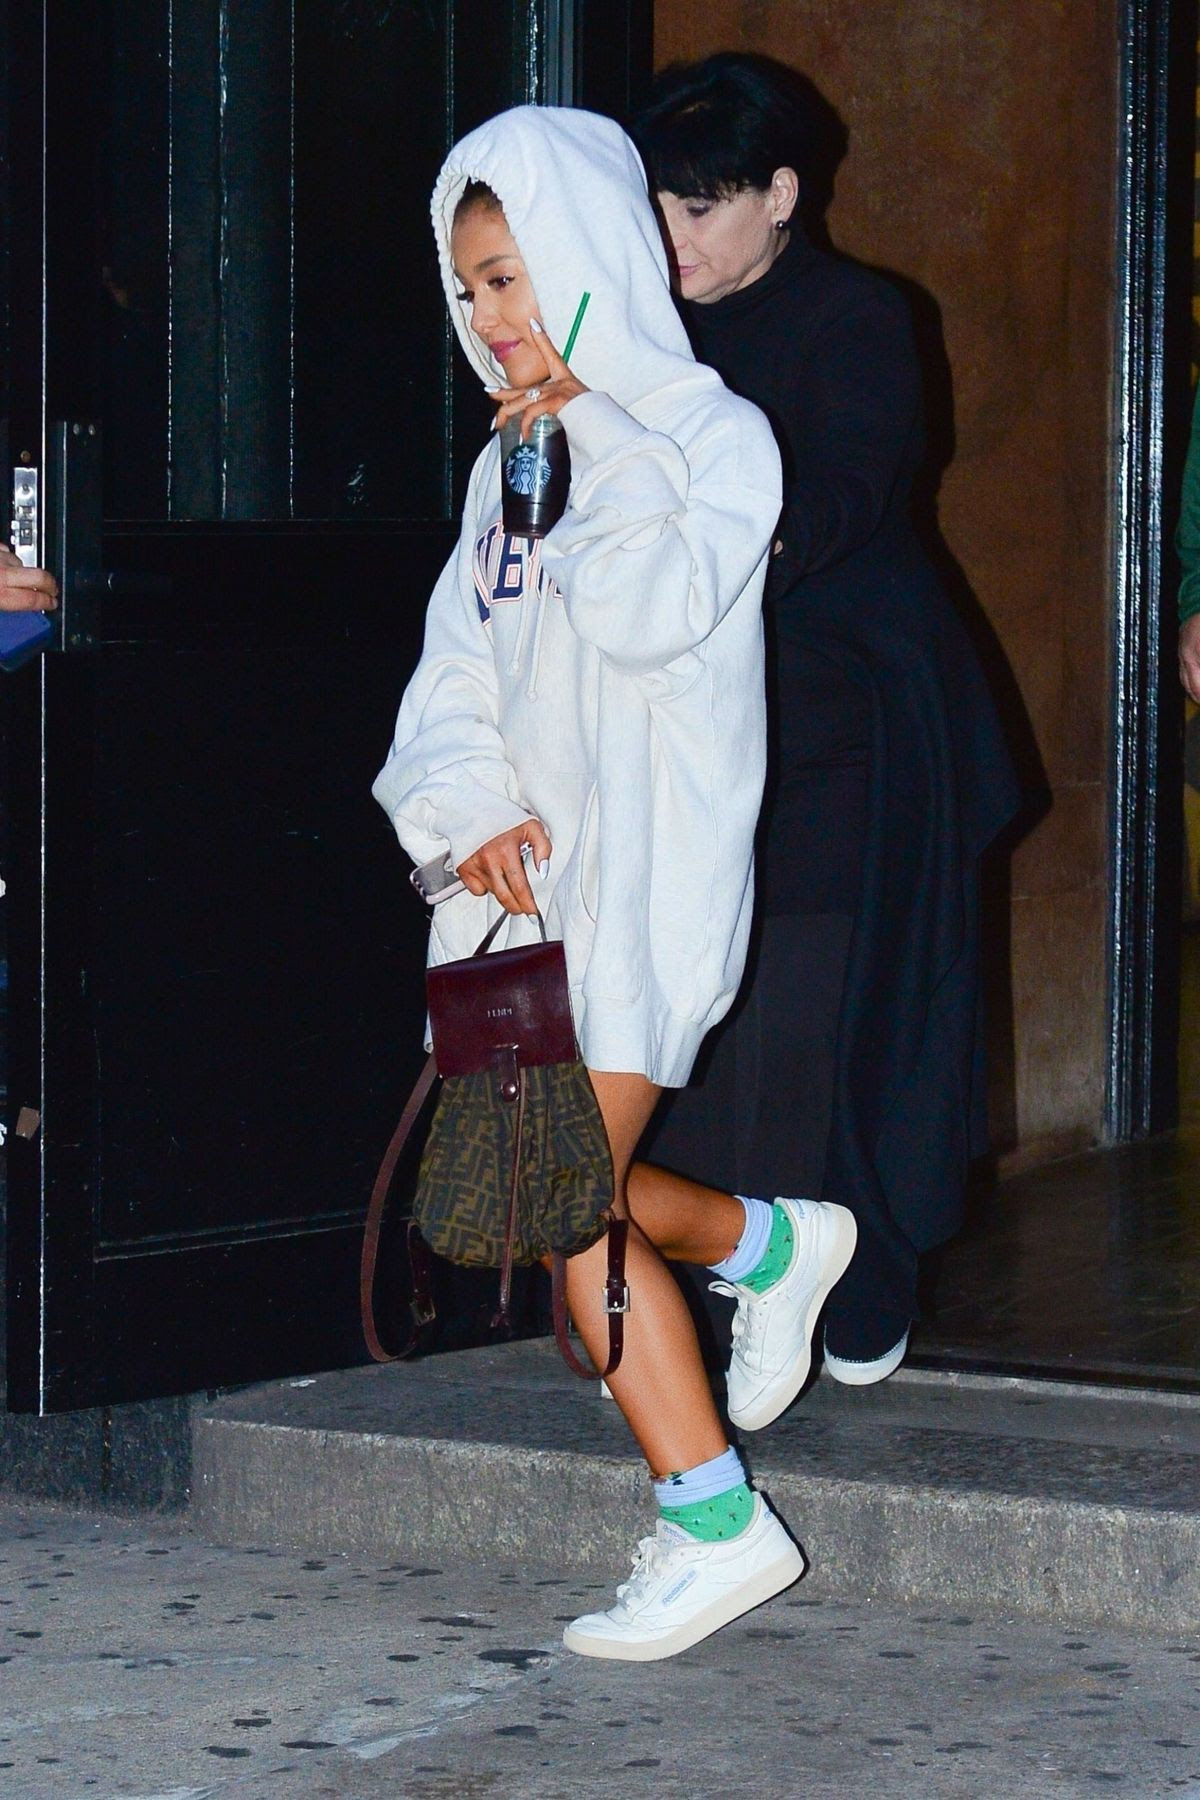 ariana grande tip toes in tennis shoes leaving studio in